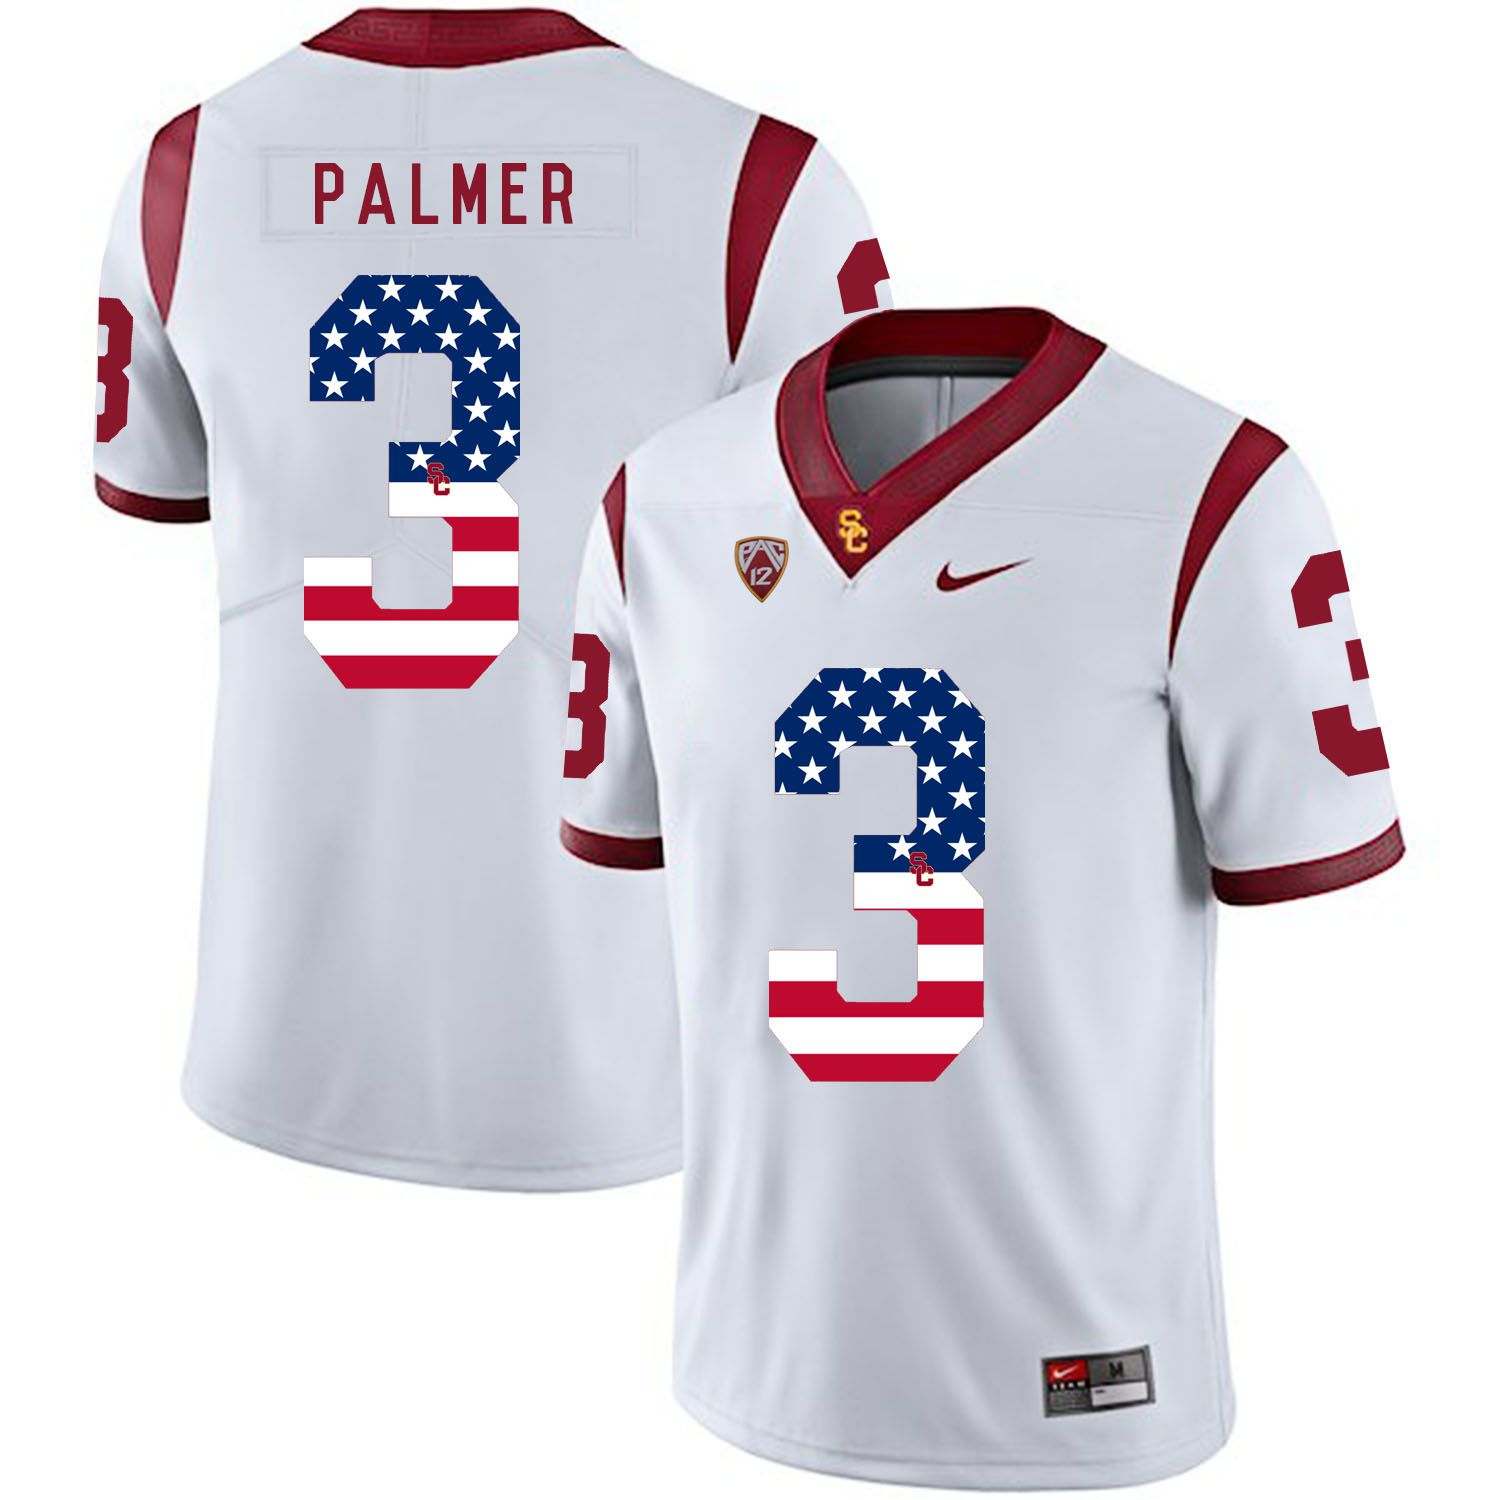 Men USC Trojans 3 Palmer White Flag Customized NCAA Jerseys